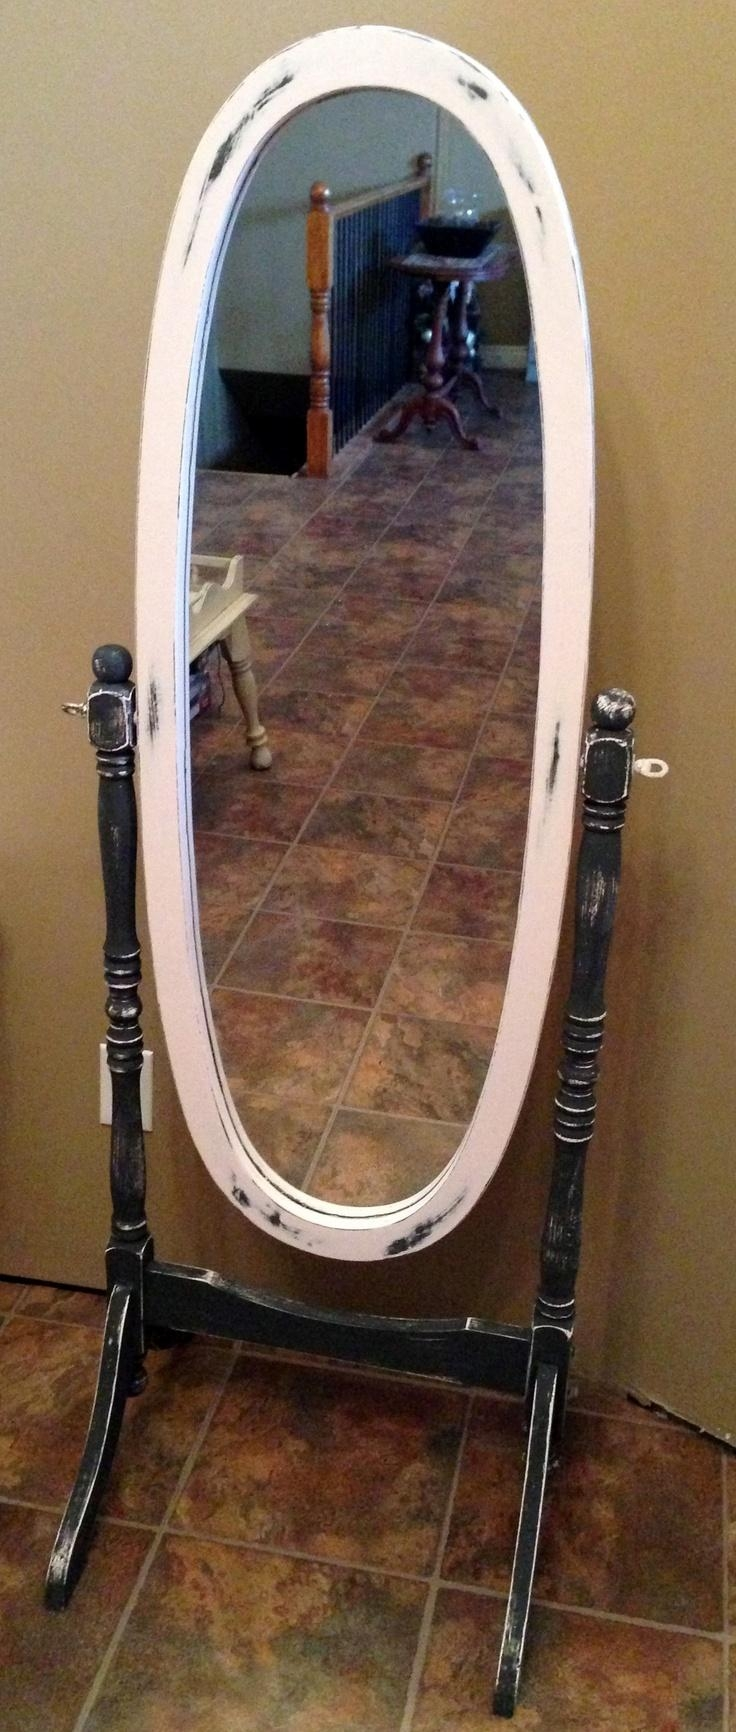 8 Best Mirror Stand Up Images On Pinterest | Cheval Mirror, Floor Regarding Full Length Cheval Mirror (Photo 17 of 20)